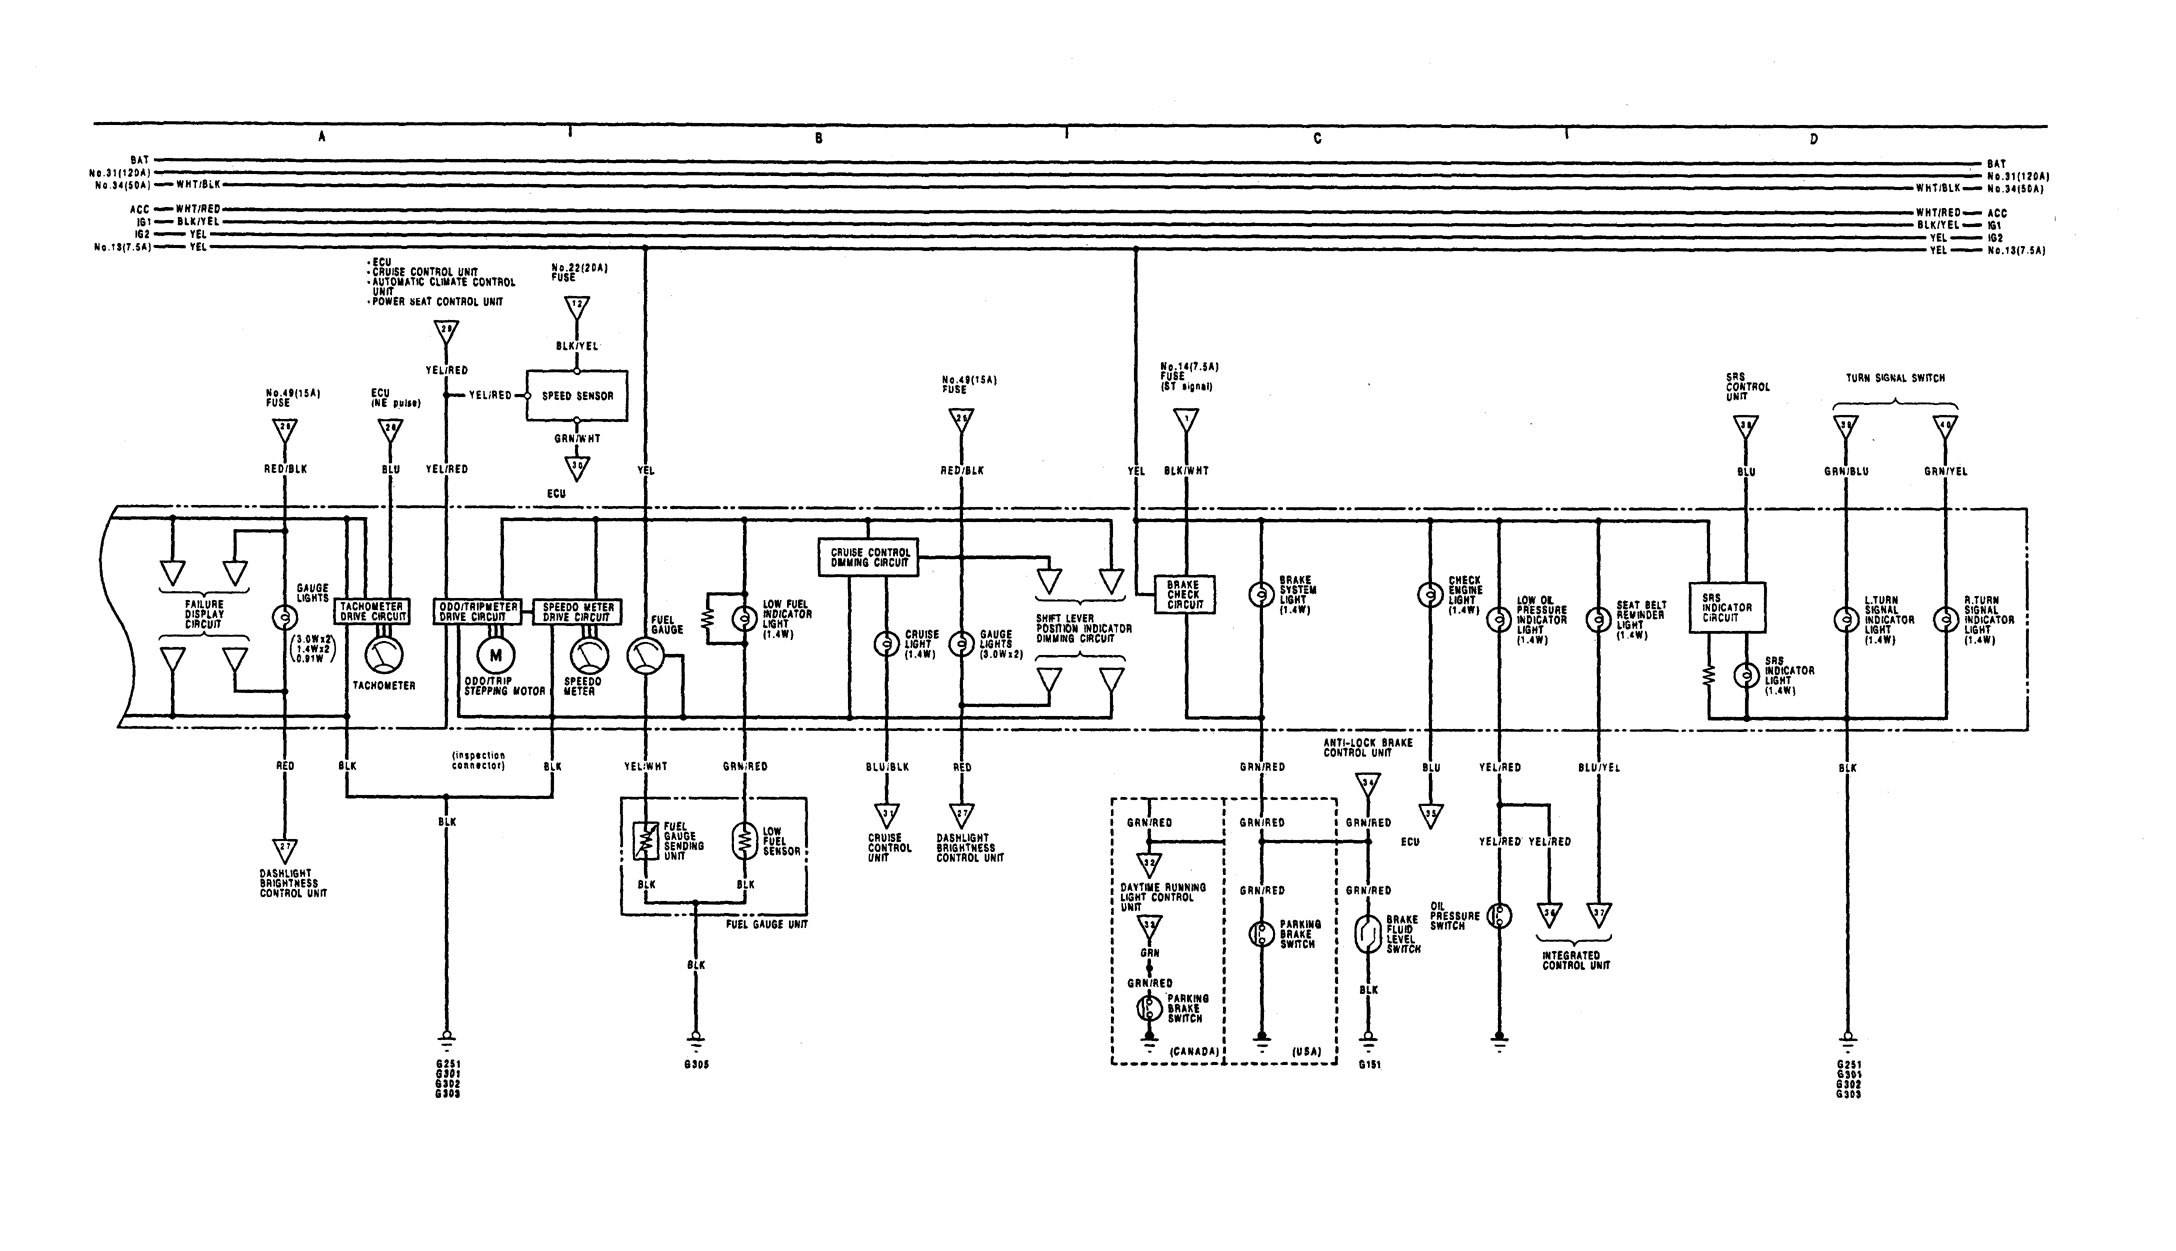 91 Acura Legend Wiring Diagram Diagrams Engine Parts For 1991 Jeffdoedesign Com 1970 Mustang Stereo